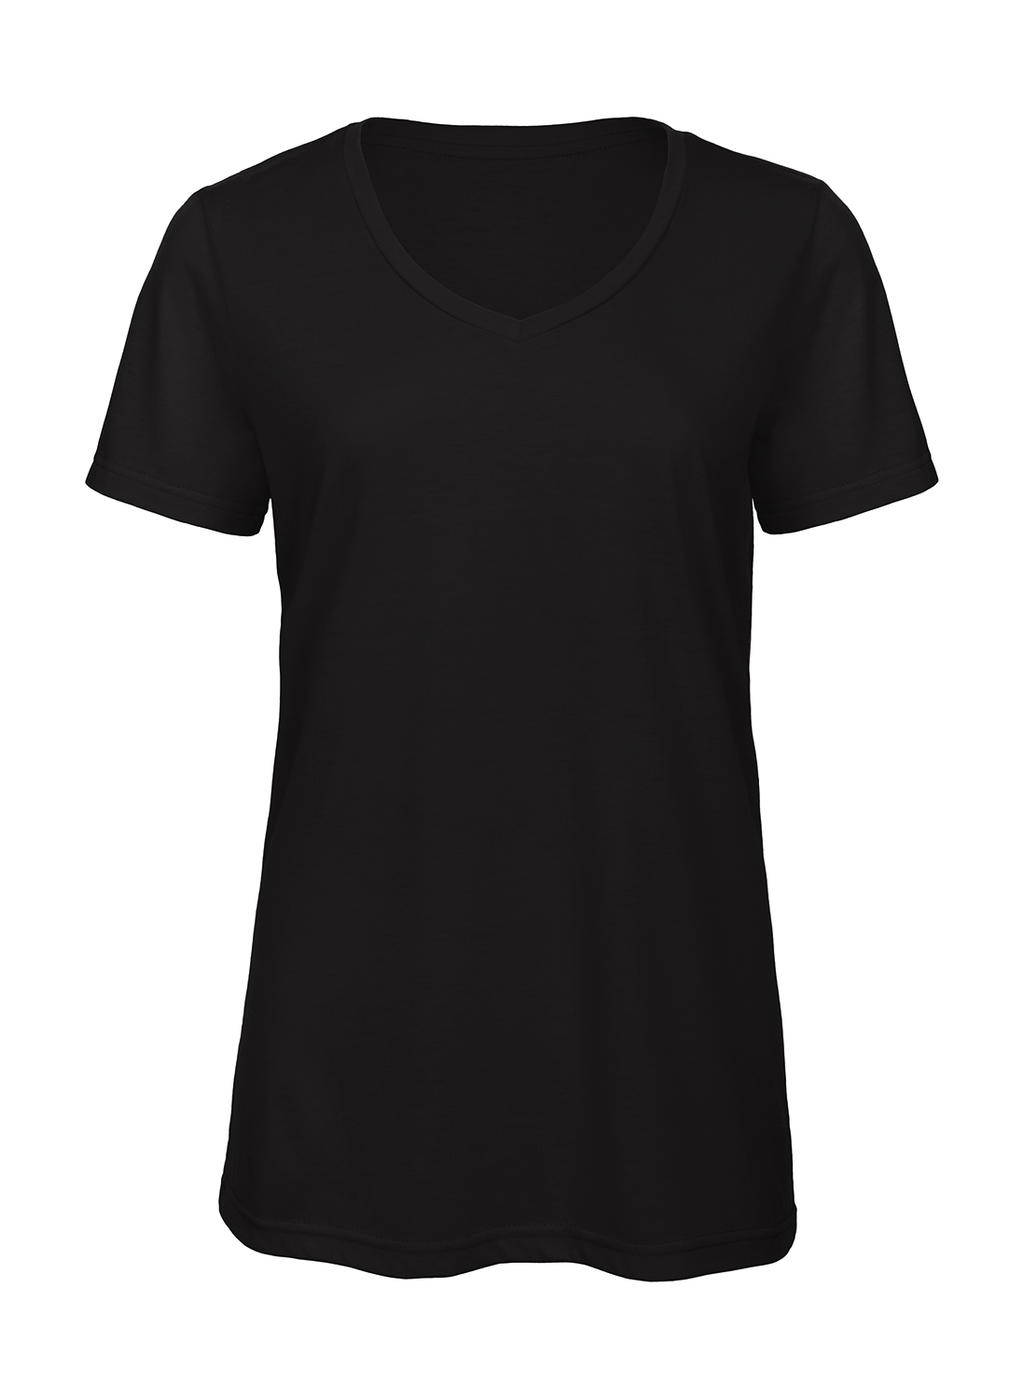 B & C V Triblend/women T-Shirt